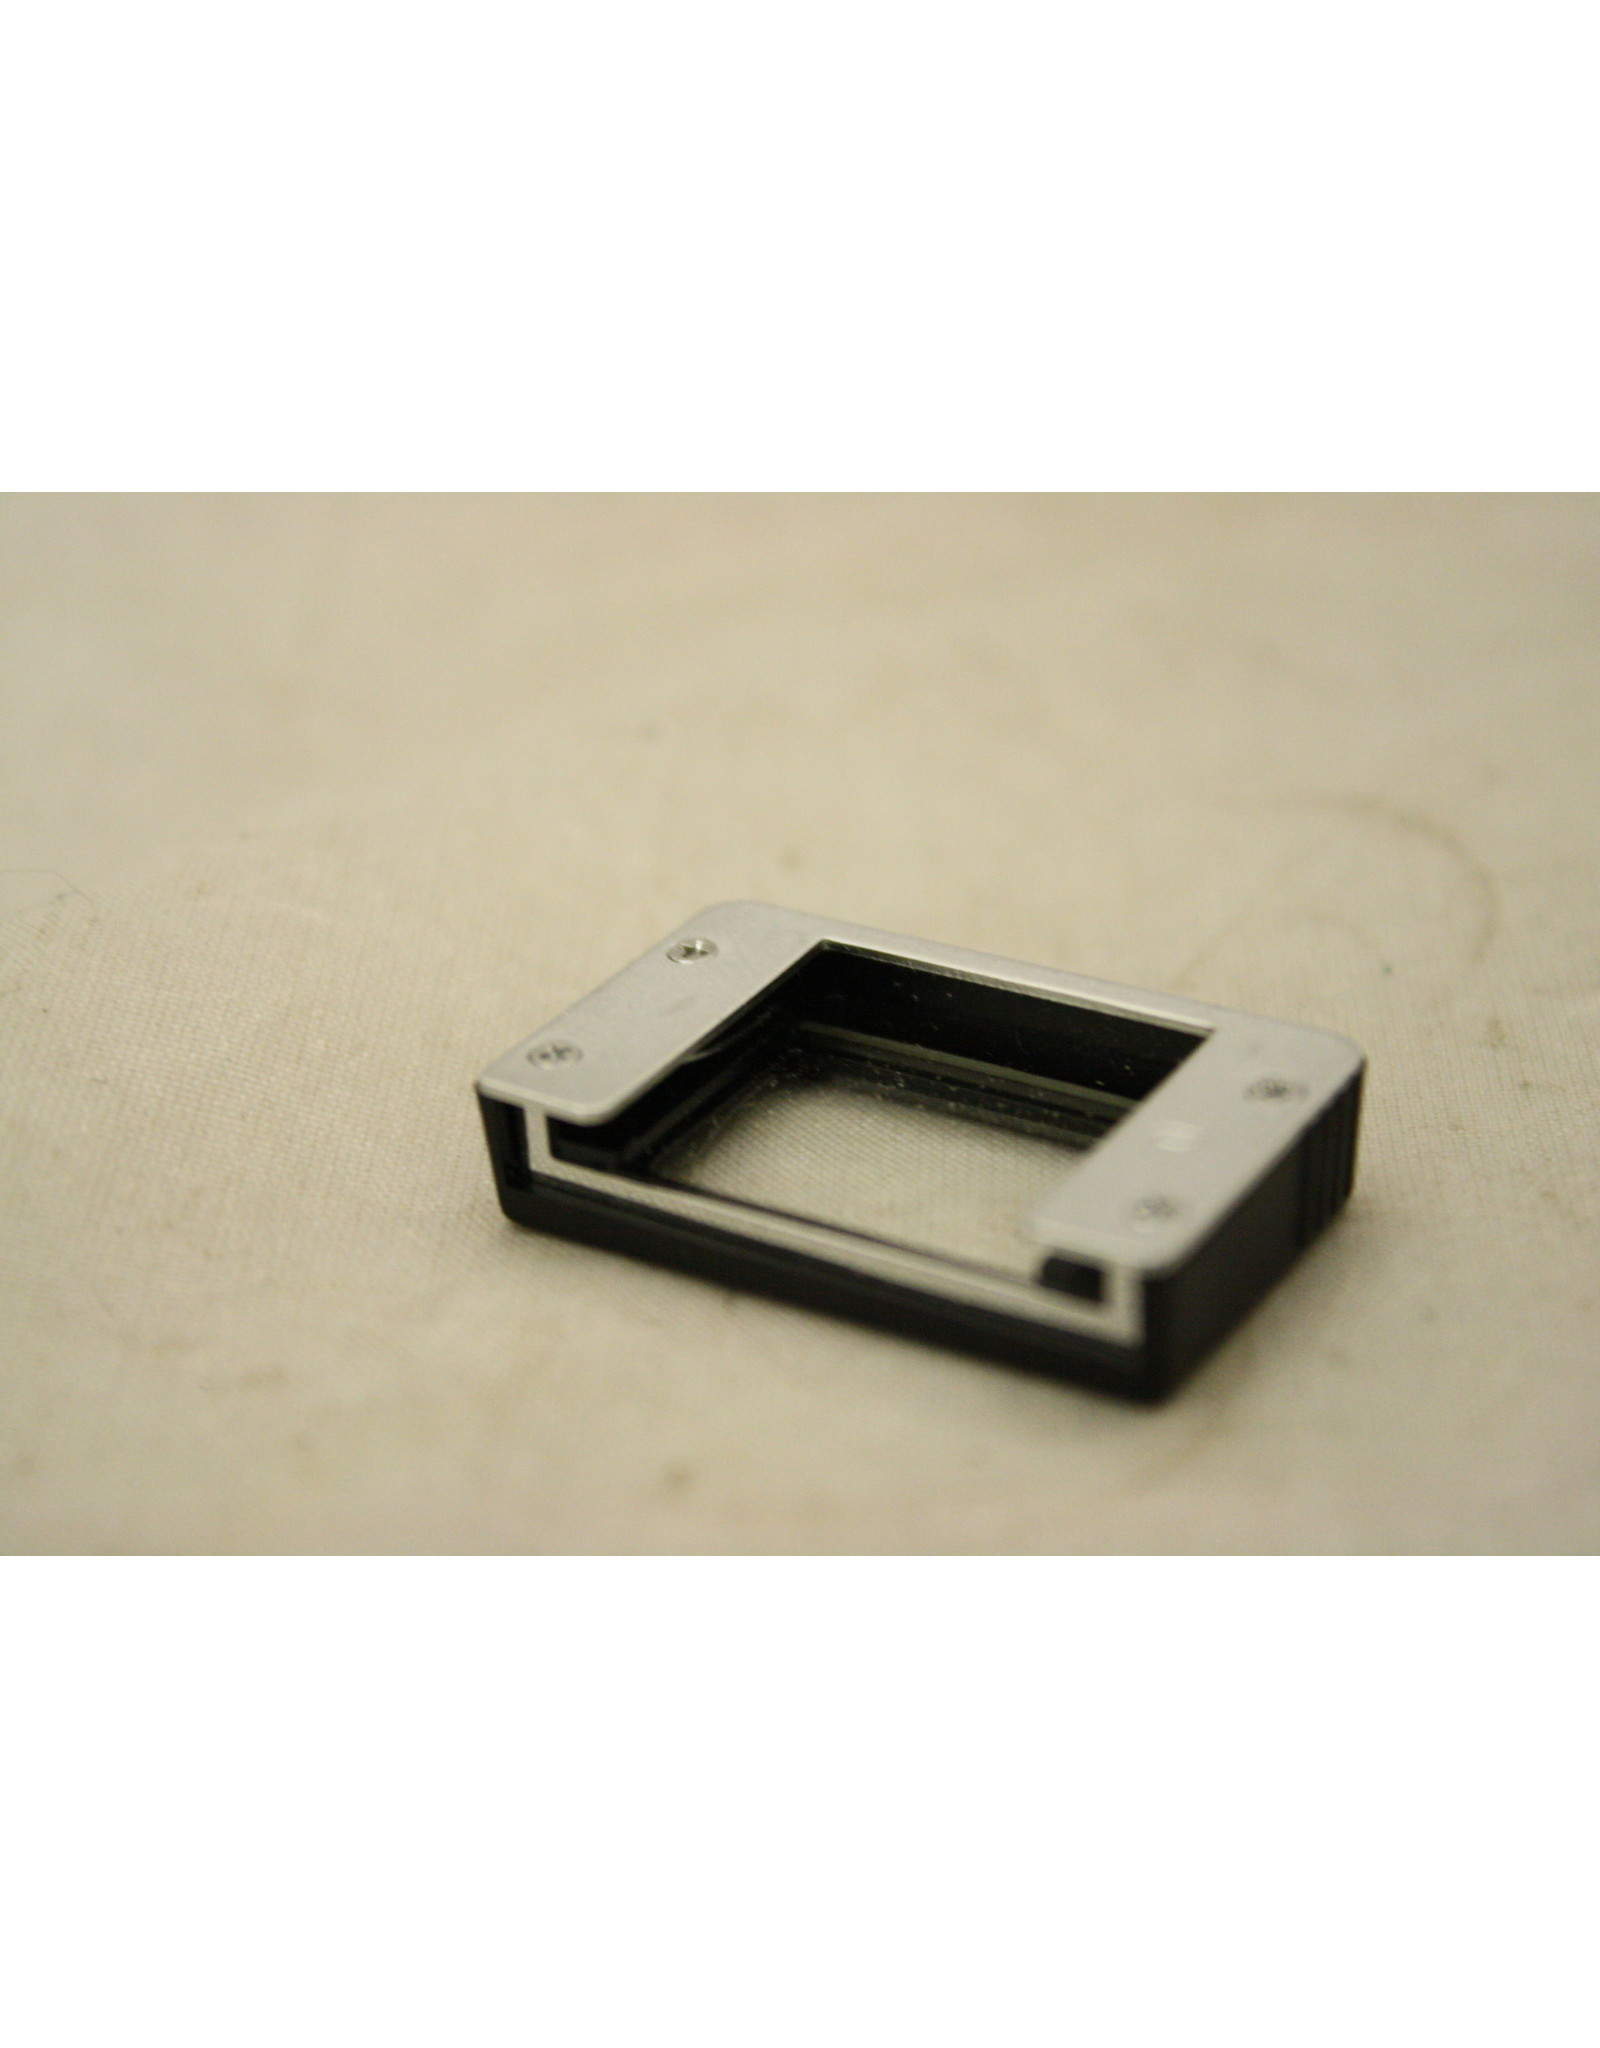 Konica Minolta Canon GENUINE Dioptric Adjustment Lens S #0 For AE-1 A1 Vintage Camera Diopter